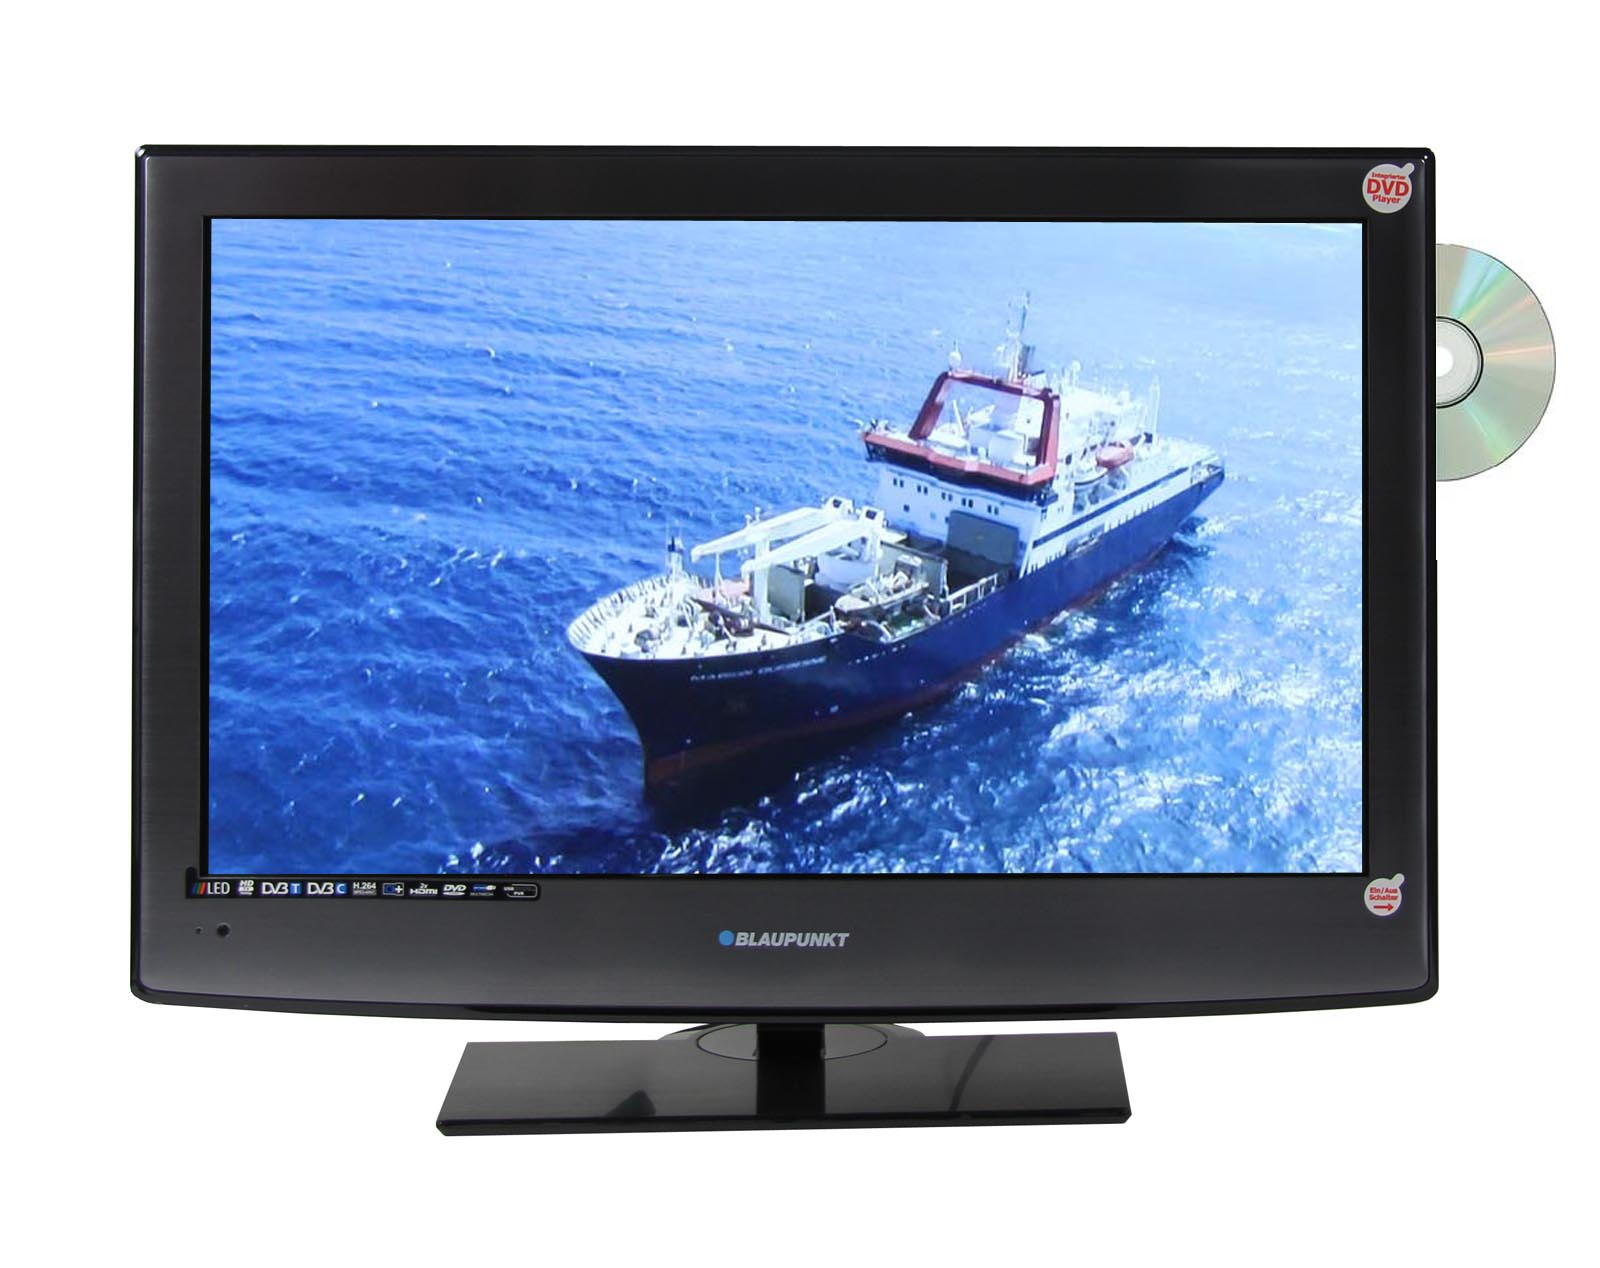 blaupunkt bw21f173tfb led fernseher 21 5 zoll 55cm integrierter dvd player ebay. Black Bedroom Furniture Sets. Home Design Ideas